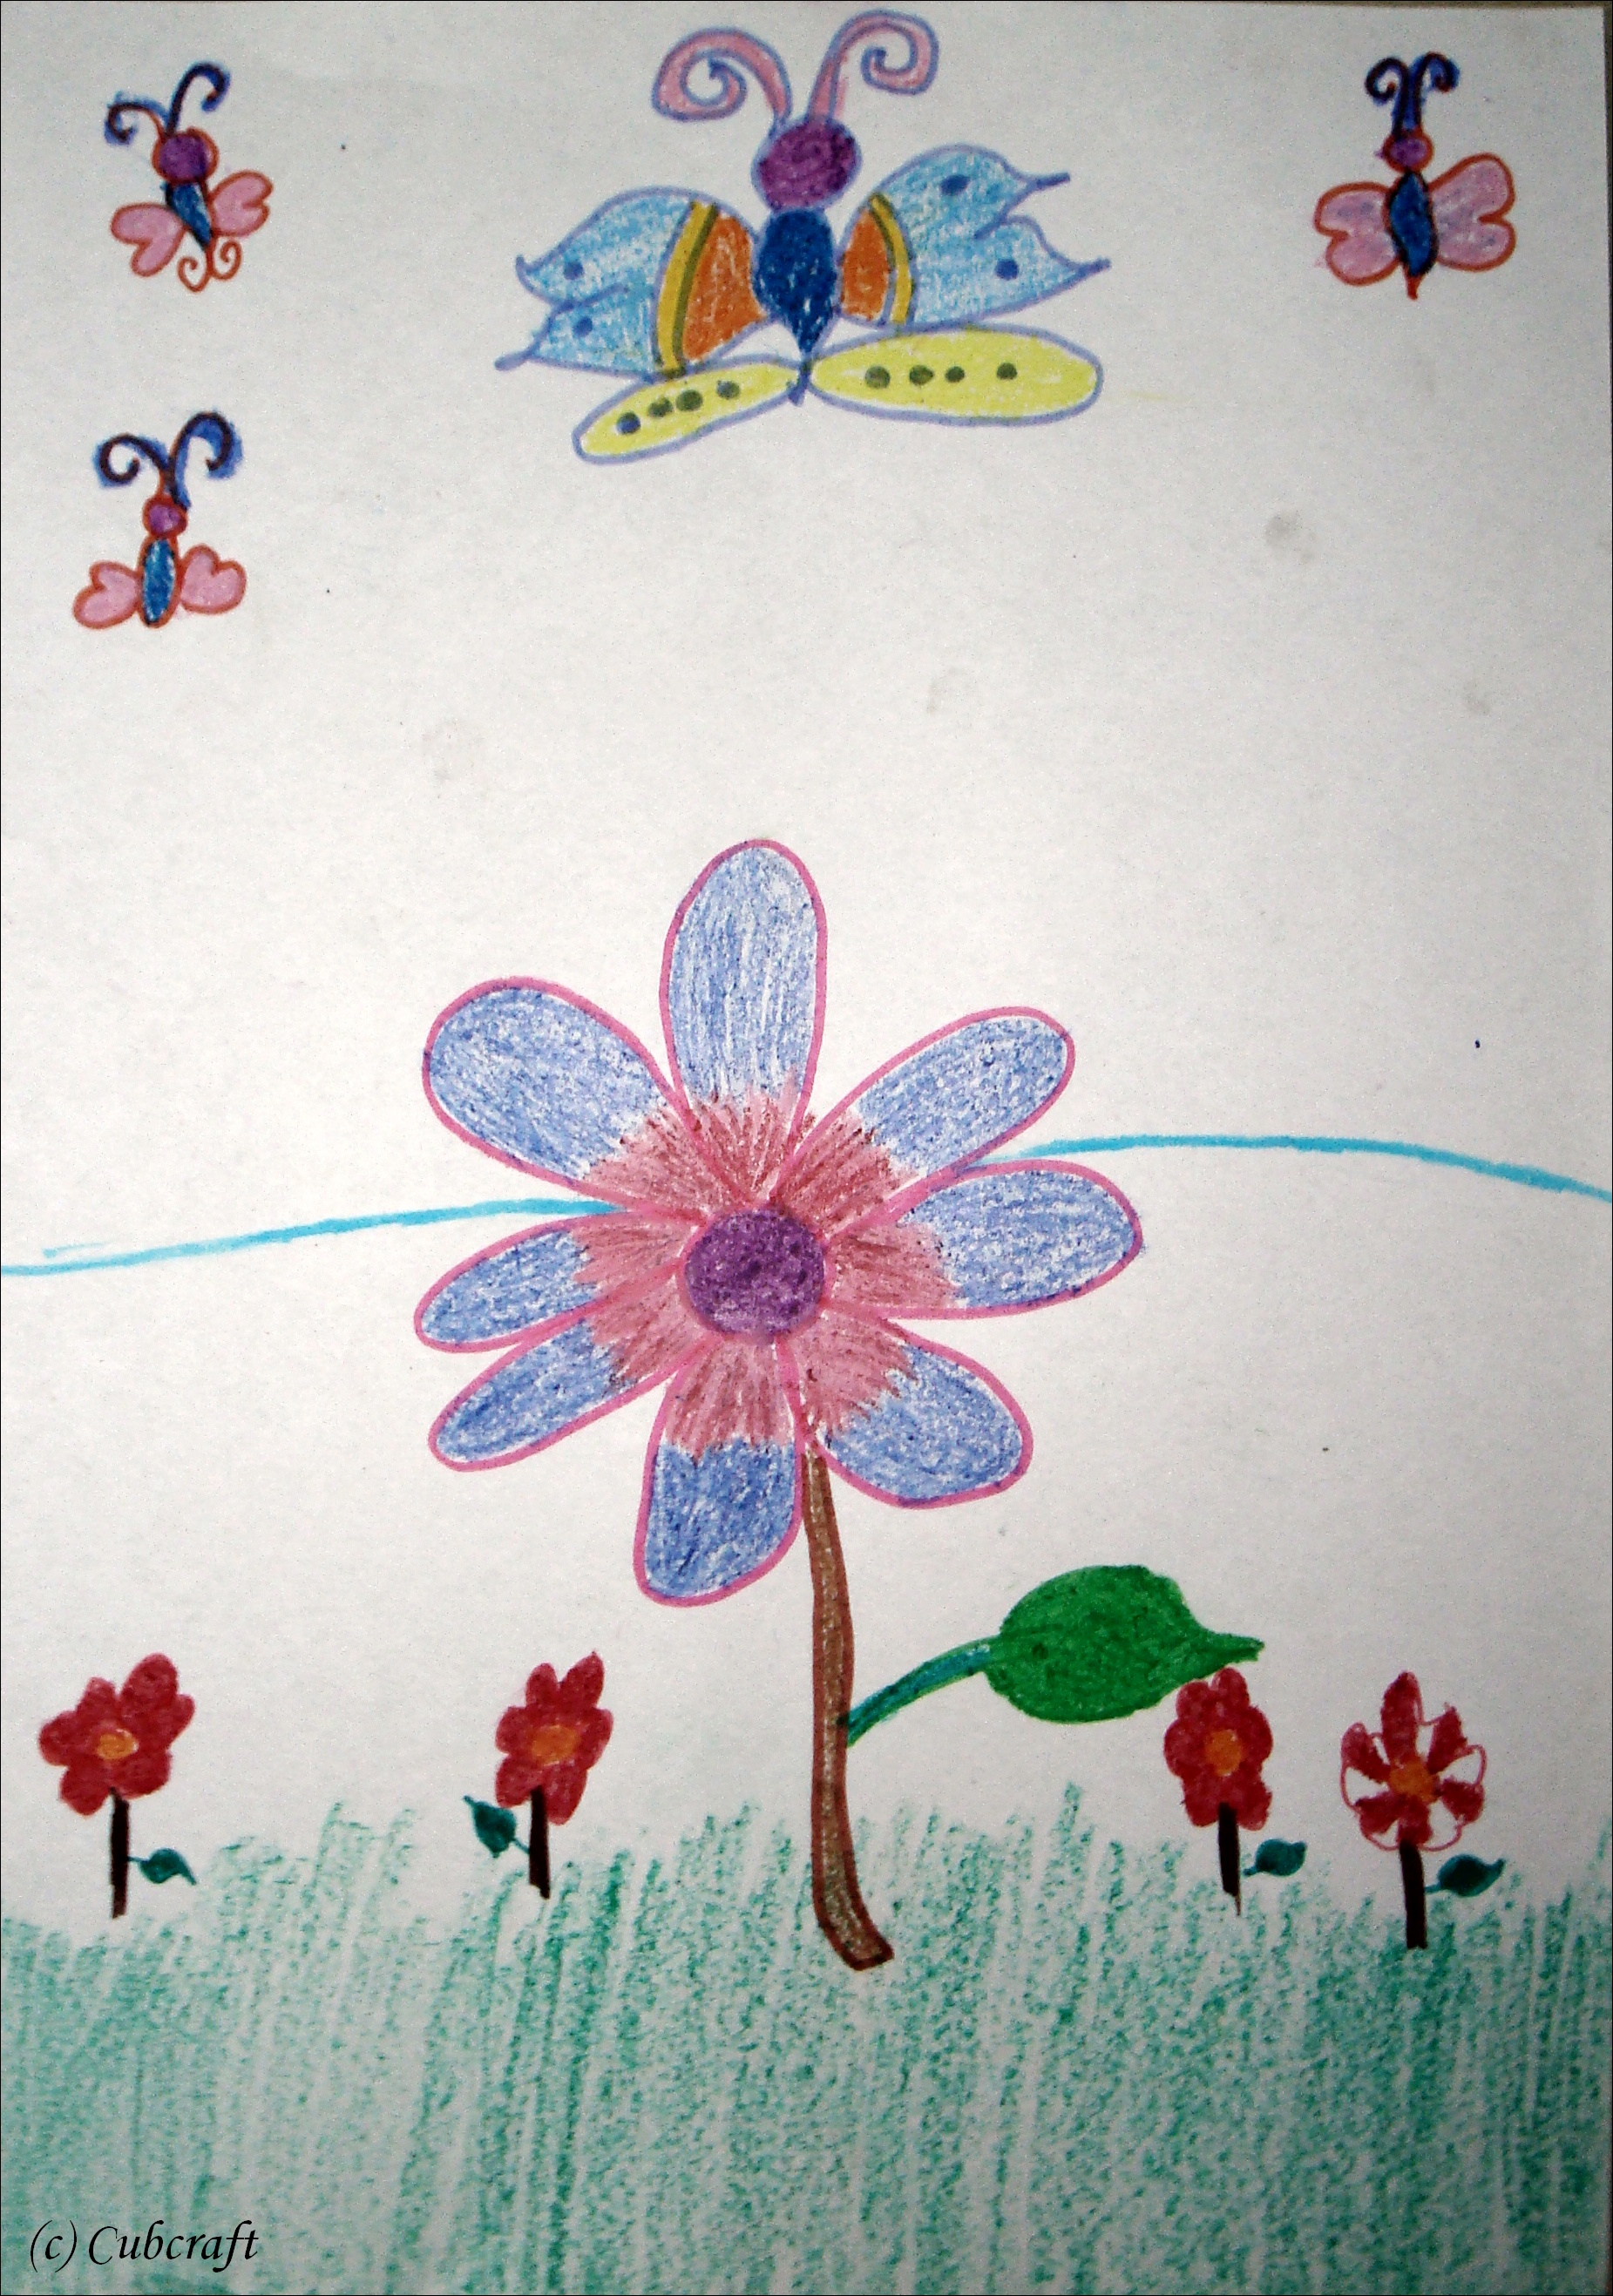 My house with garden drawing for kids - Tags Drawing Garden Related For Garden Drawing For Kids My Download